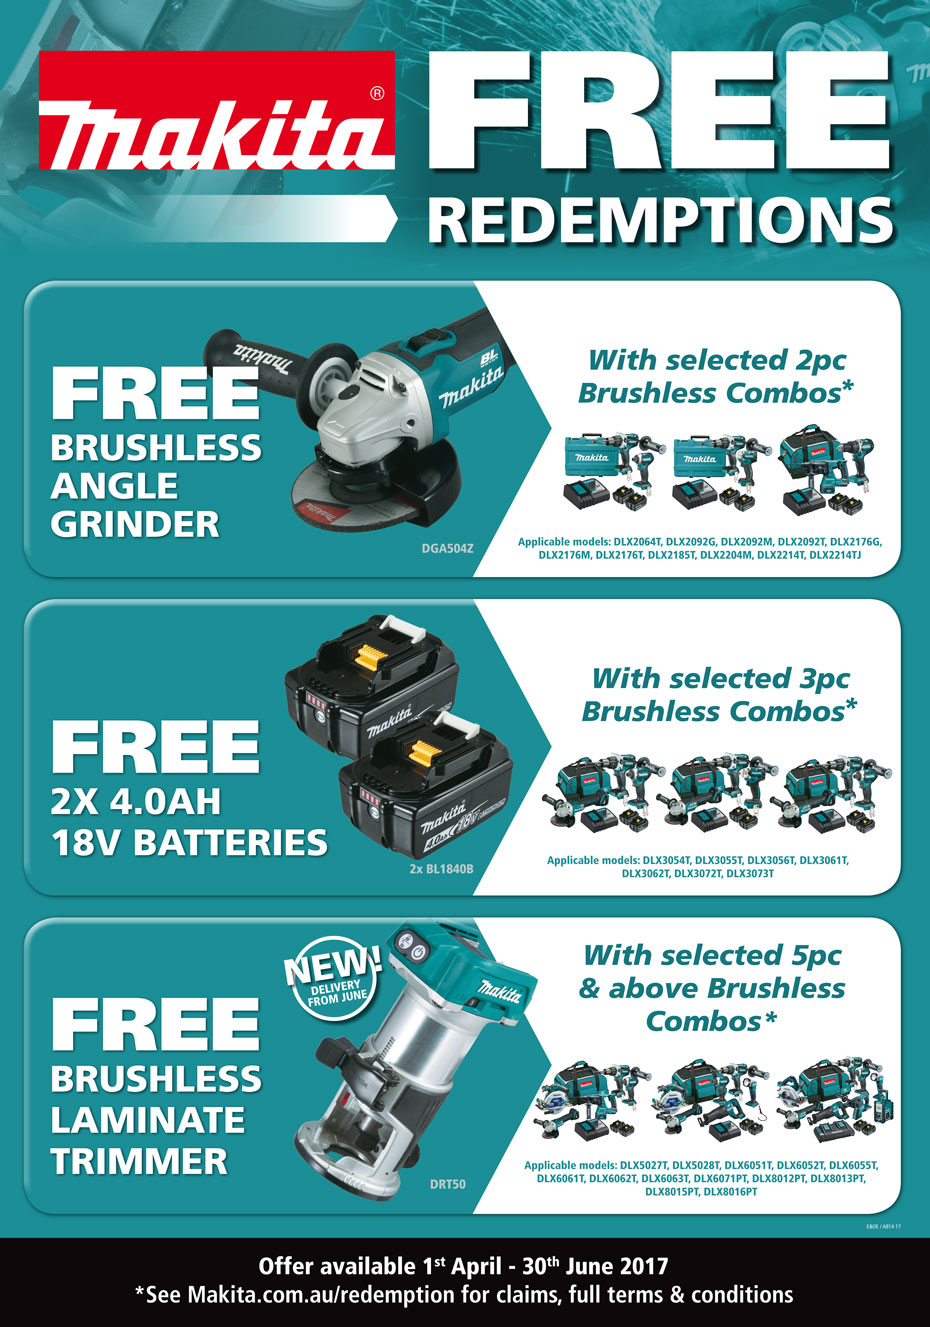 makita-reedem-apr-2017-000.jpg